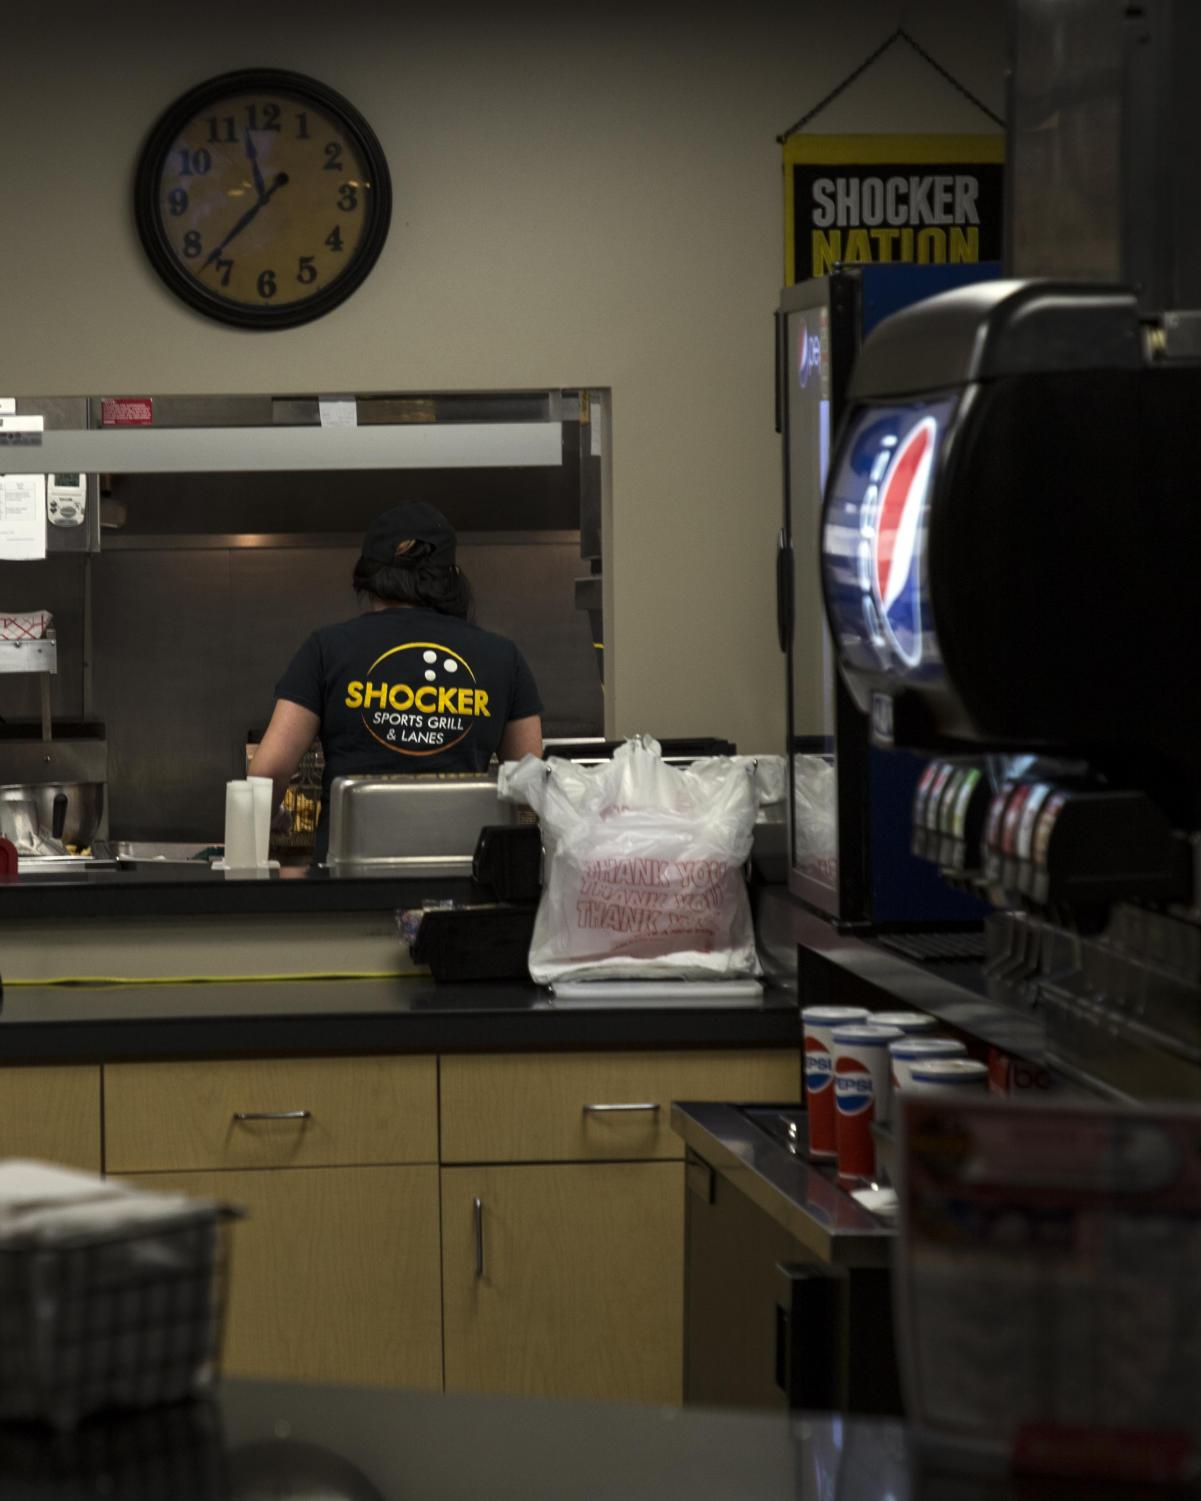 An employee prepares food for Shocker Sports Grill and Lanes customers. Shocker Sports Grill and Lanes is located in the basement of the Rhatigan Student Center.